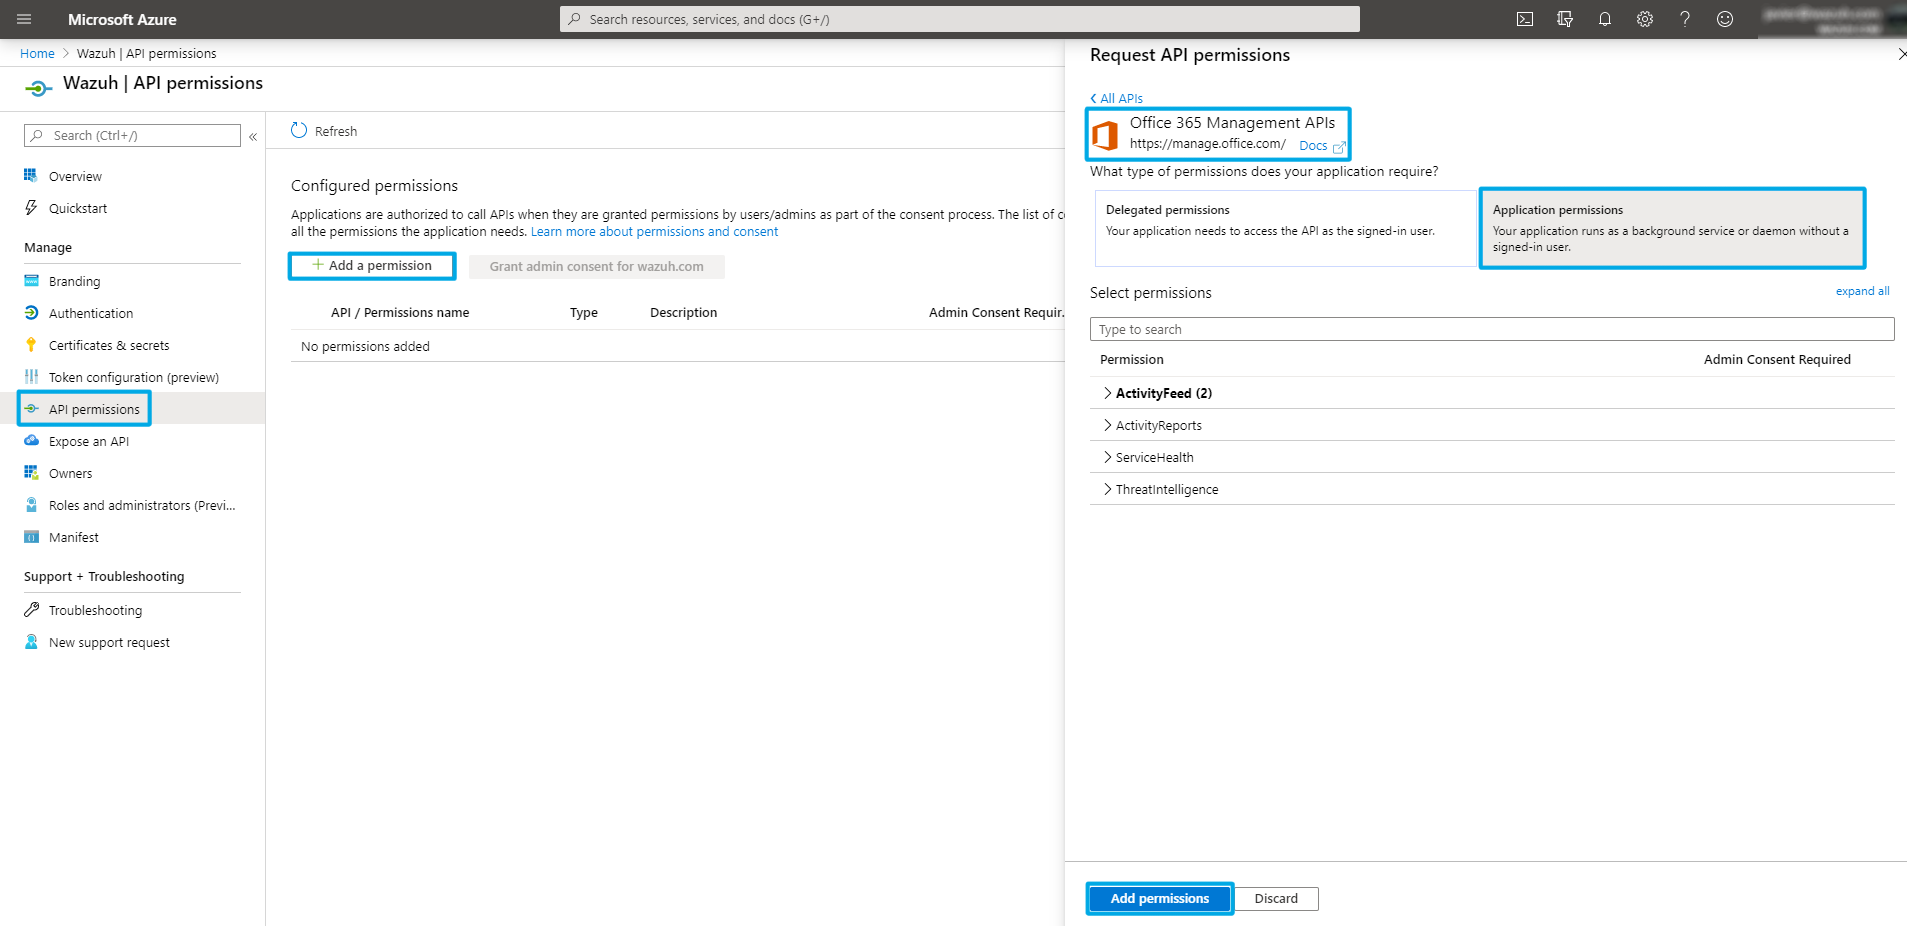 Configure the API permissions on Office 365 with Wazuh App